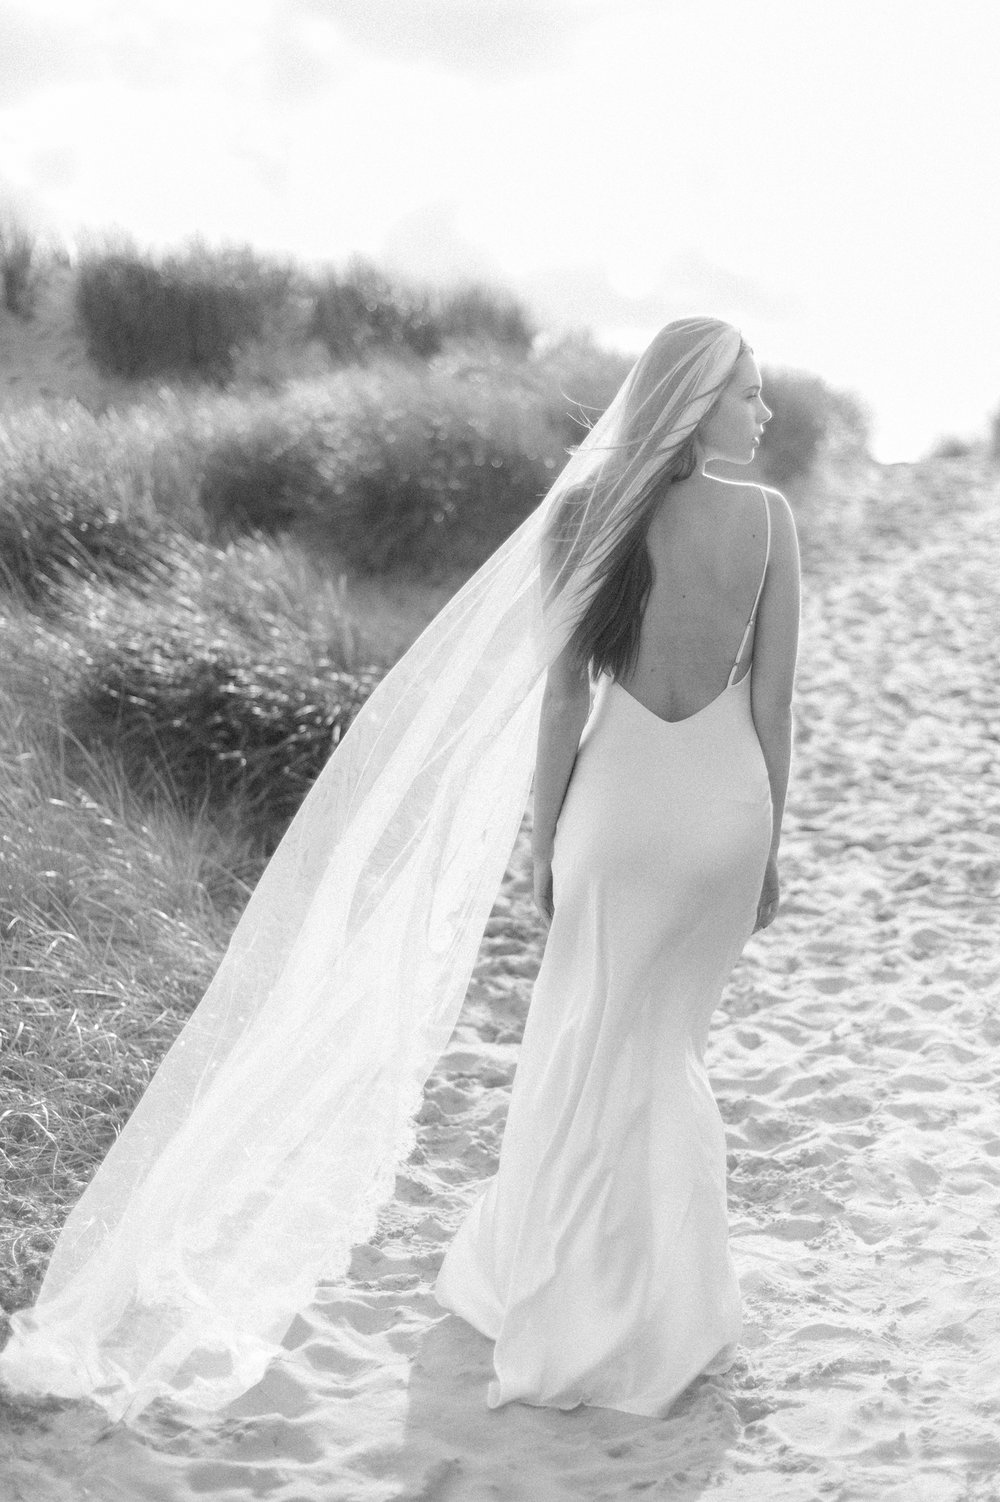 Kate-Beaumont-Wedding-Dresses-Formby-Beach-Emma-Pilkington-12.jpg